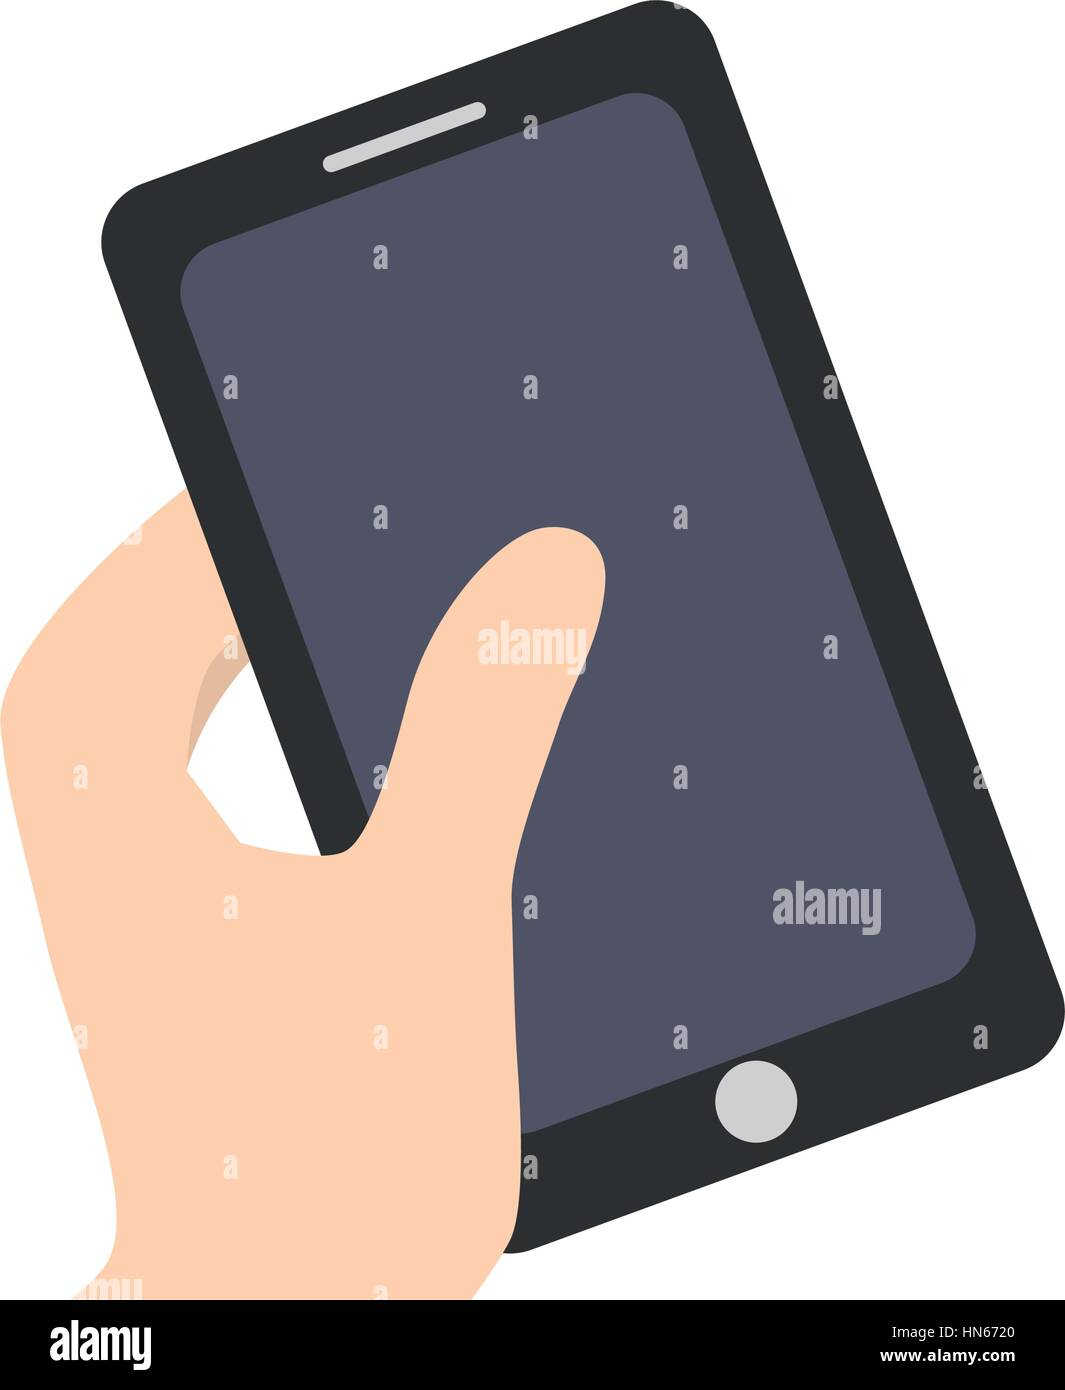 smartphone in the hand related icon - Stock Image